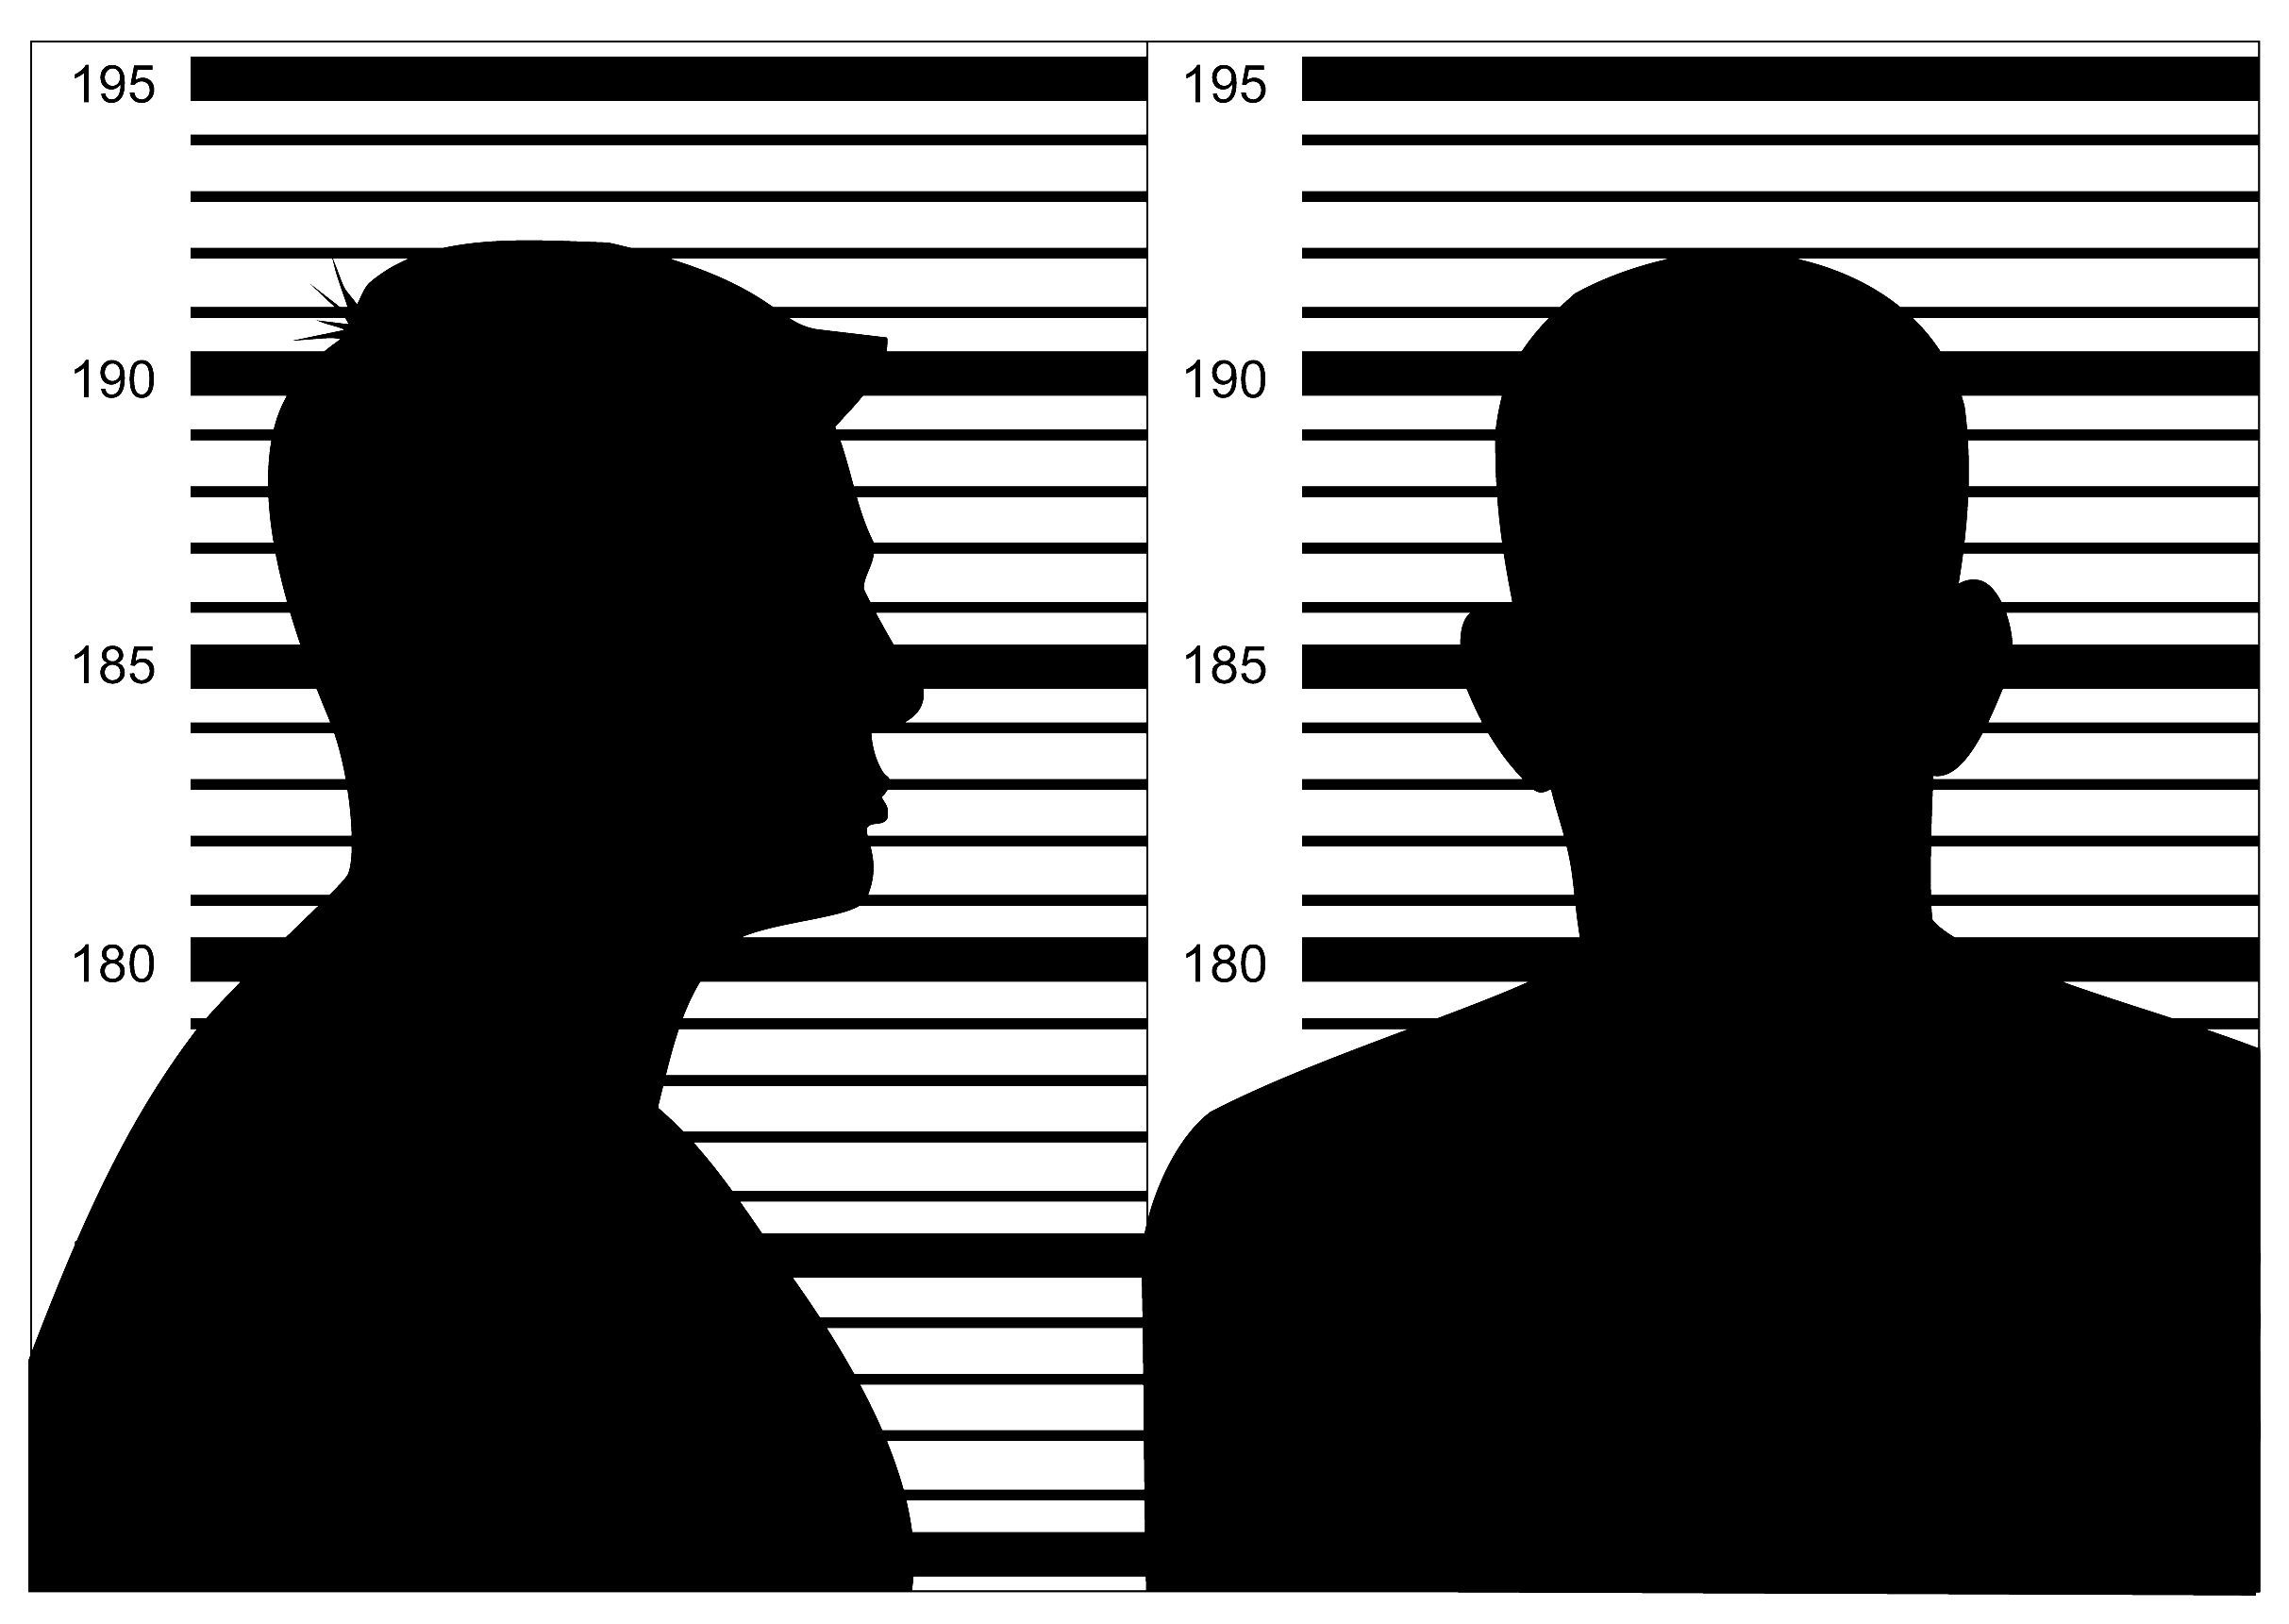 Clipart mugshot royalty free download Opinion: Why Google Should Crack Down Harder On The Mugshot ... royalty free download